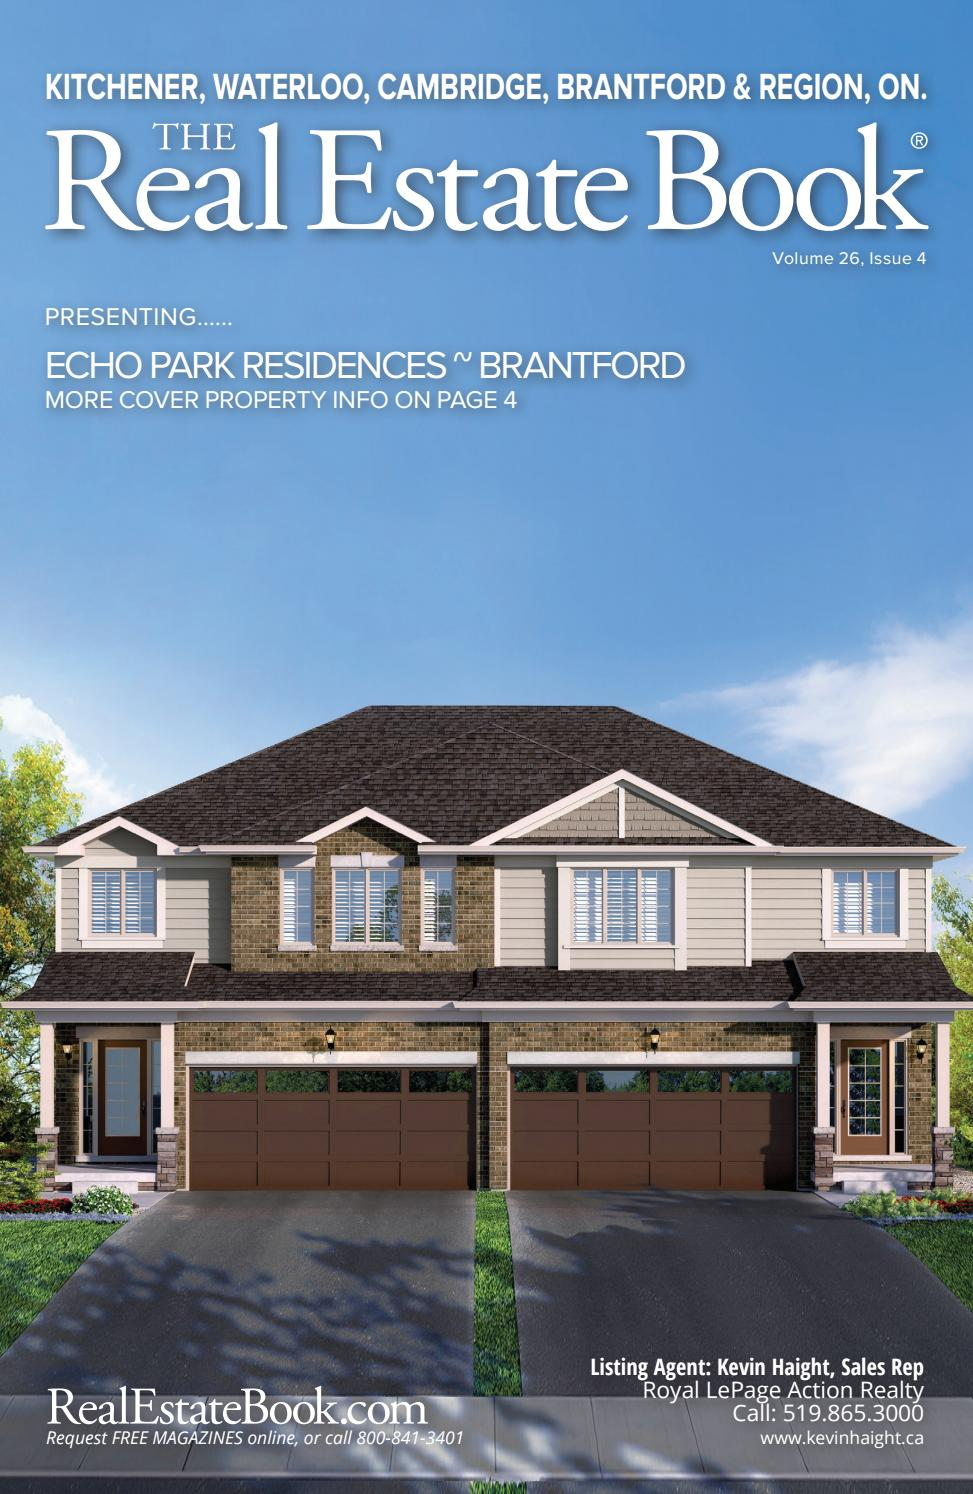 Ebook87731 26 04 by The Real Estate Book of Kitchener Waterloo - issuu